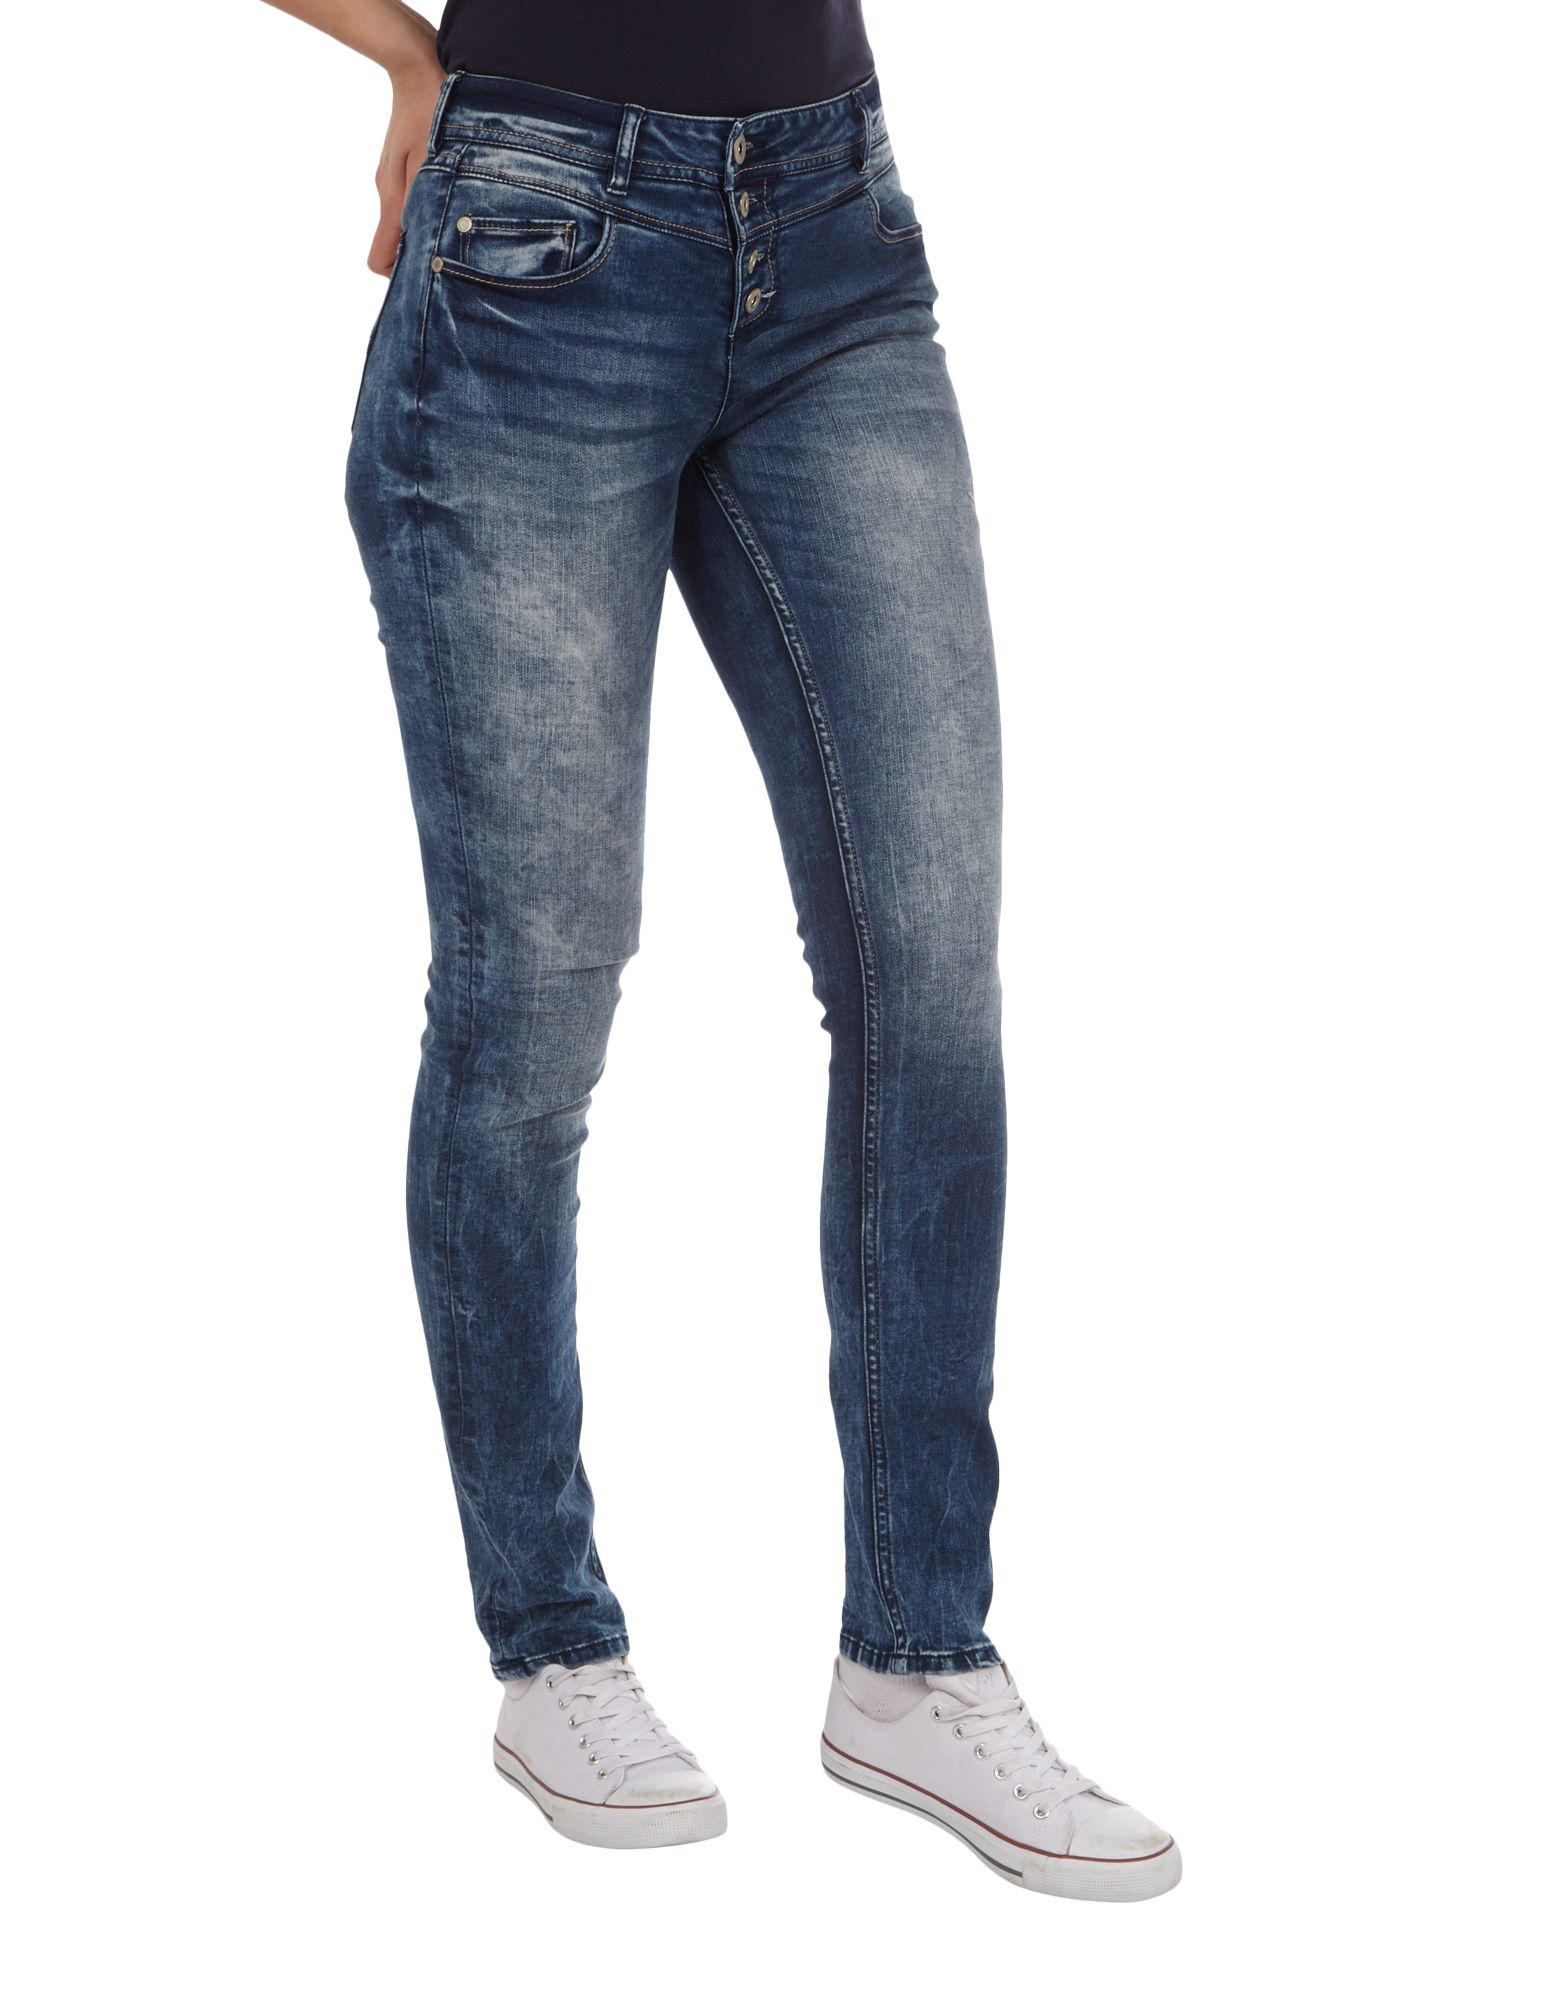 Jeans Takko Washed Stickereien Slim Fashion Stone Damen Fit Mit SUqzVMpG